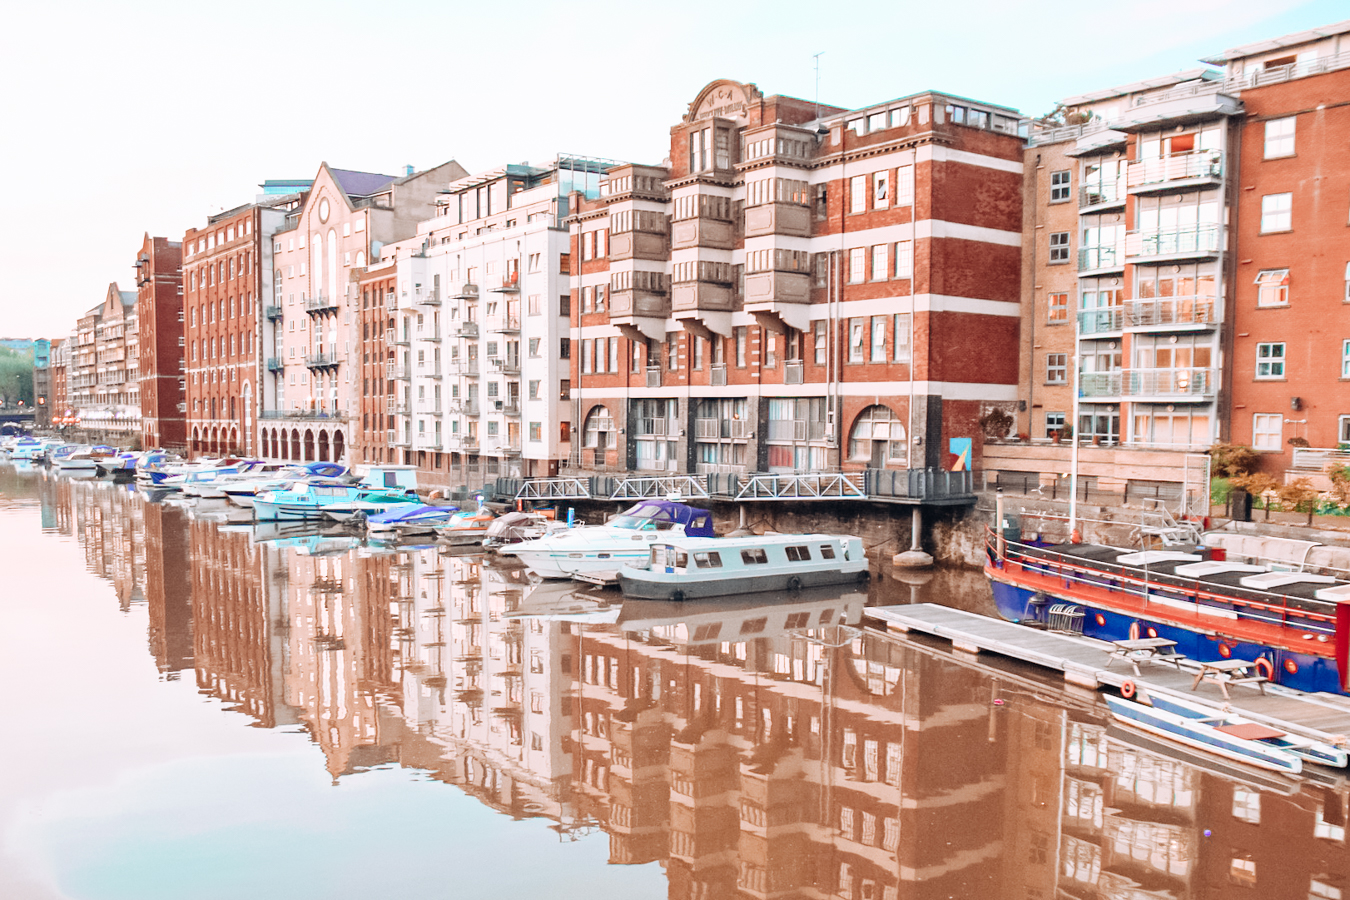 Water, boats, and buildings in Bristol